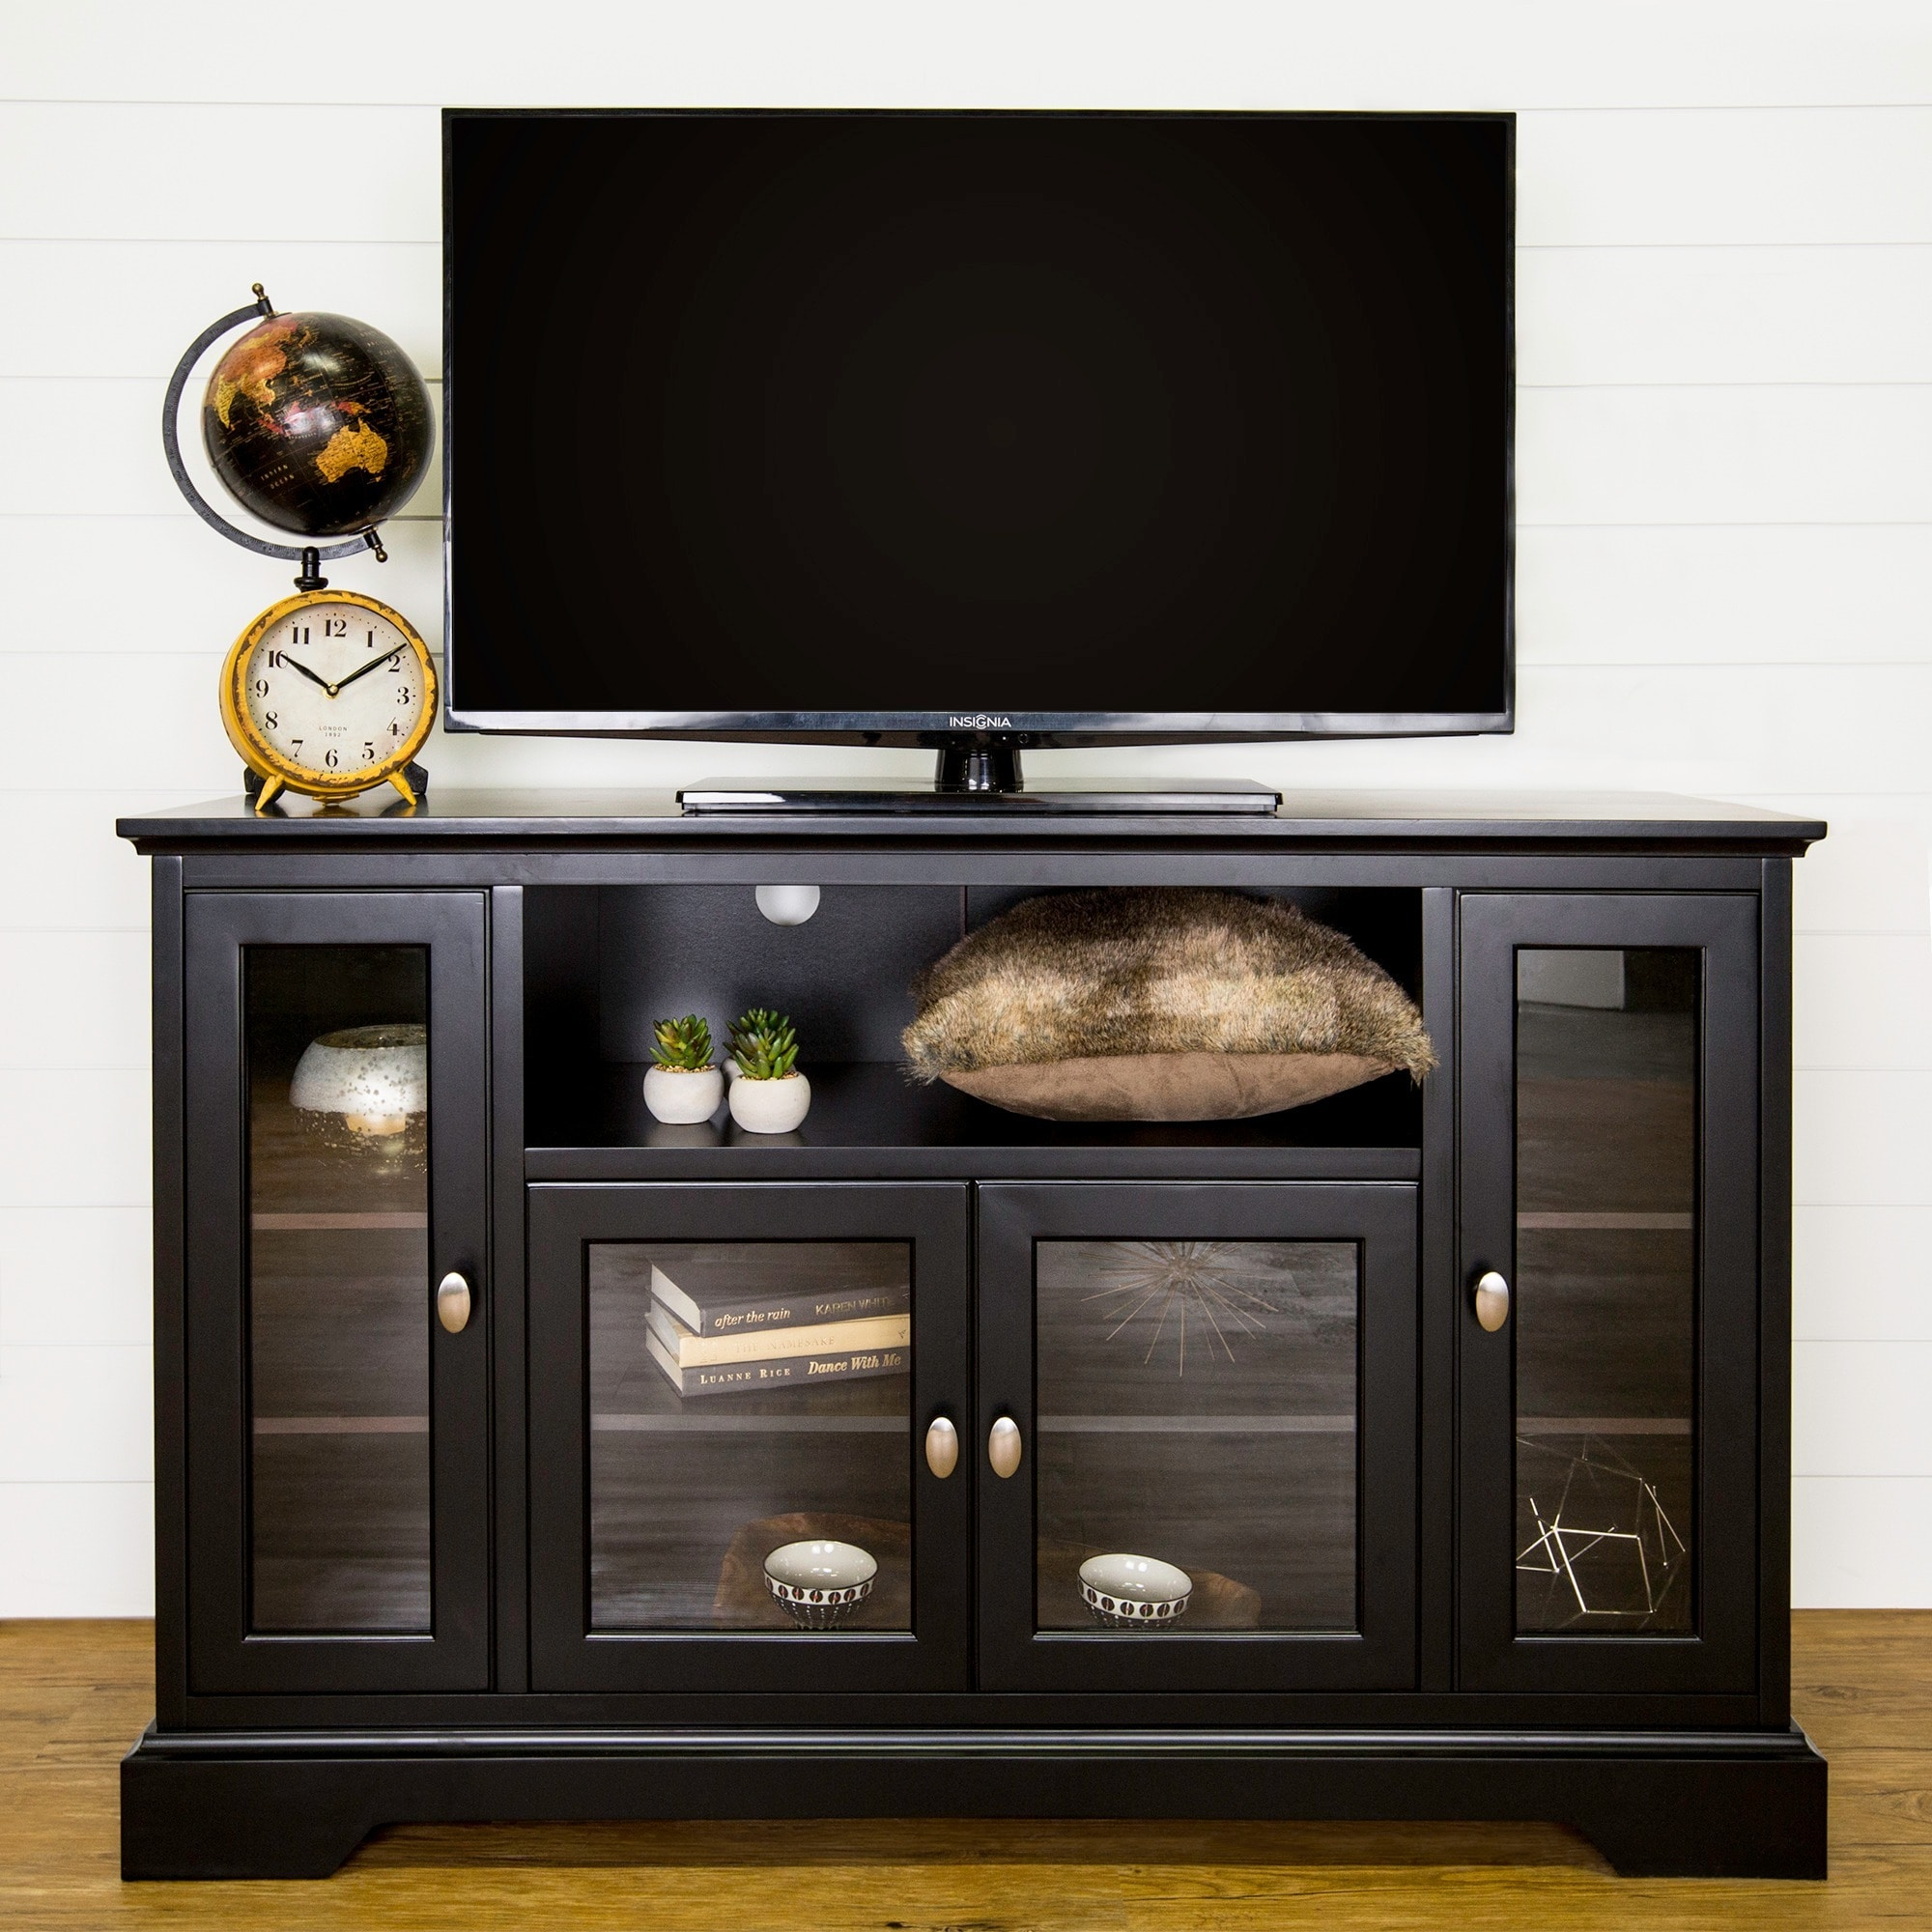 furniture stands combination tv stand in interior dresser and of dressers johnfante ideas best combo view bedroom media